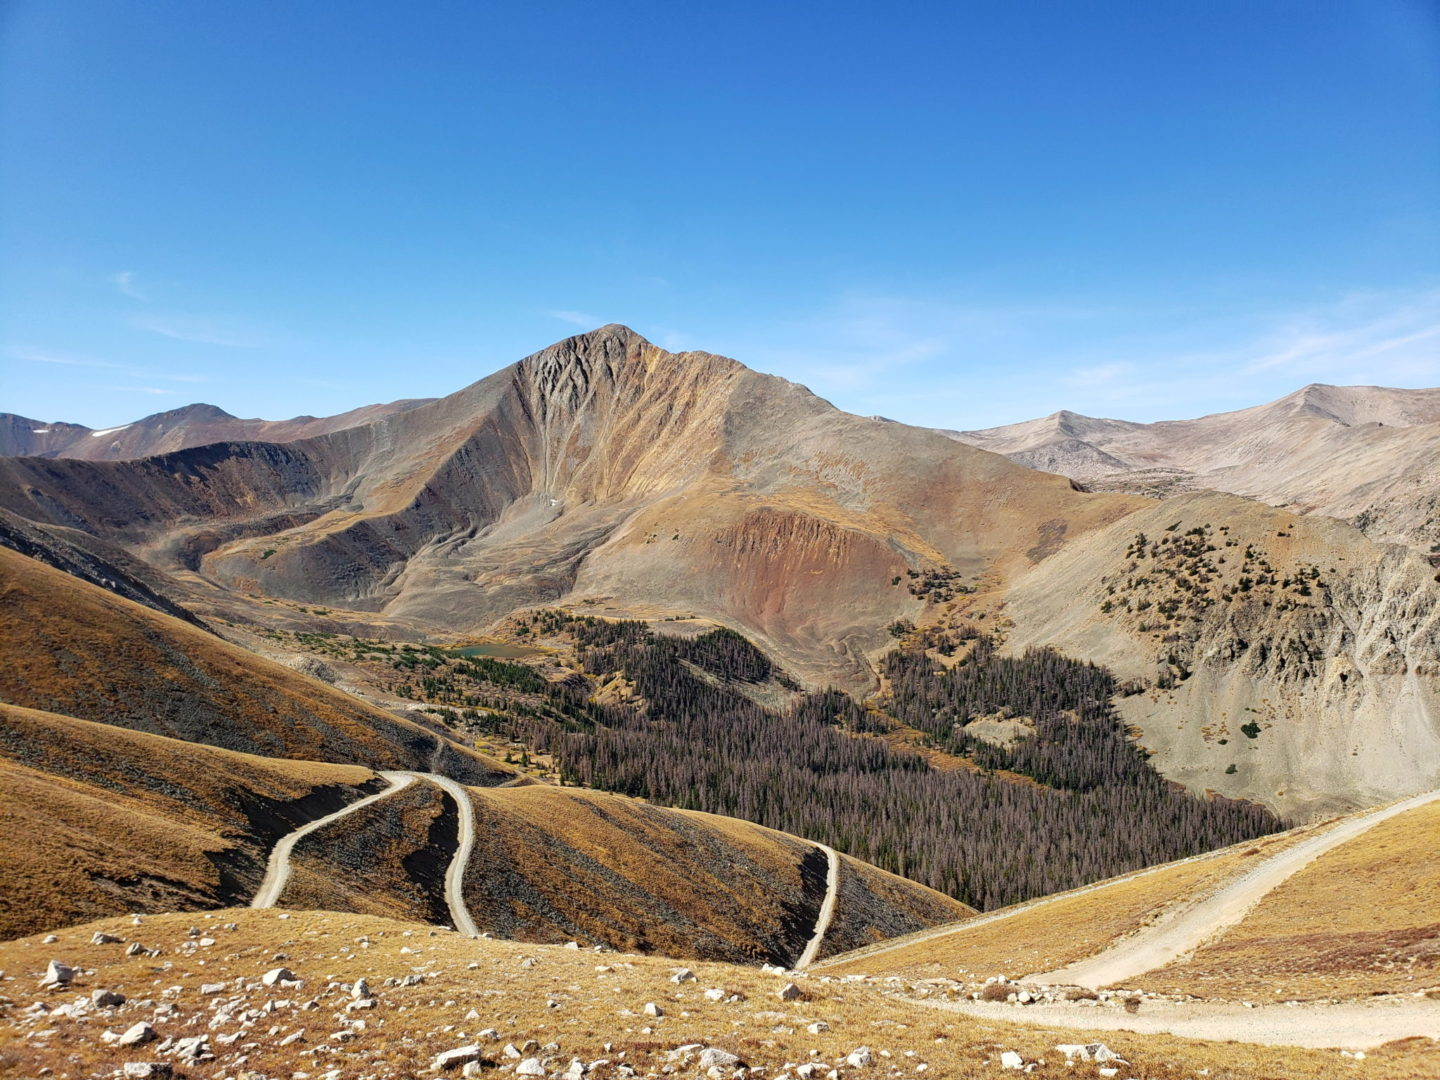 Road 277 winding up the side of Mt Antero